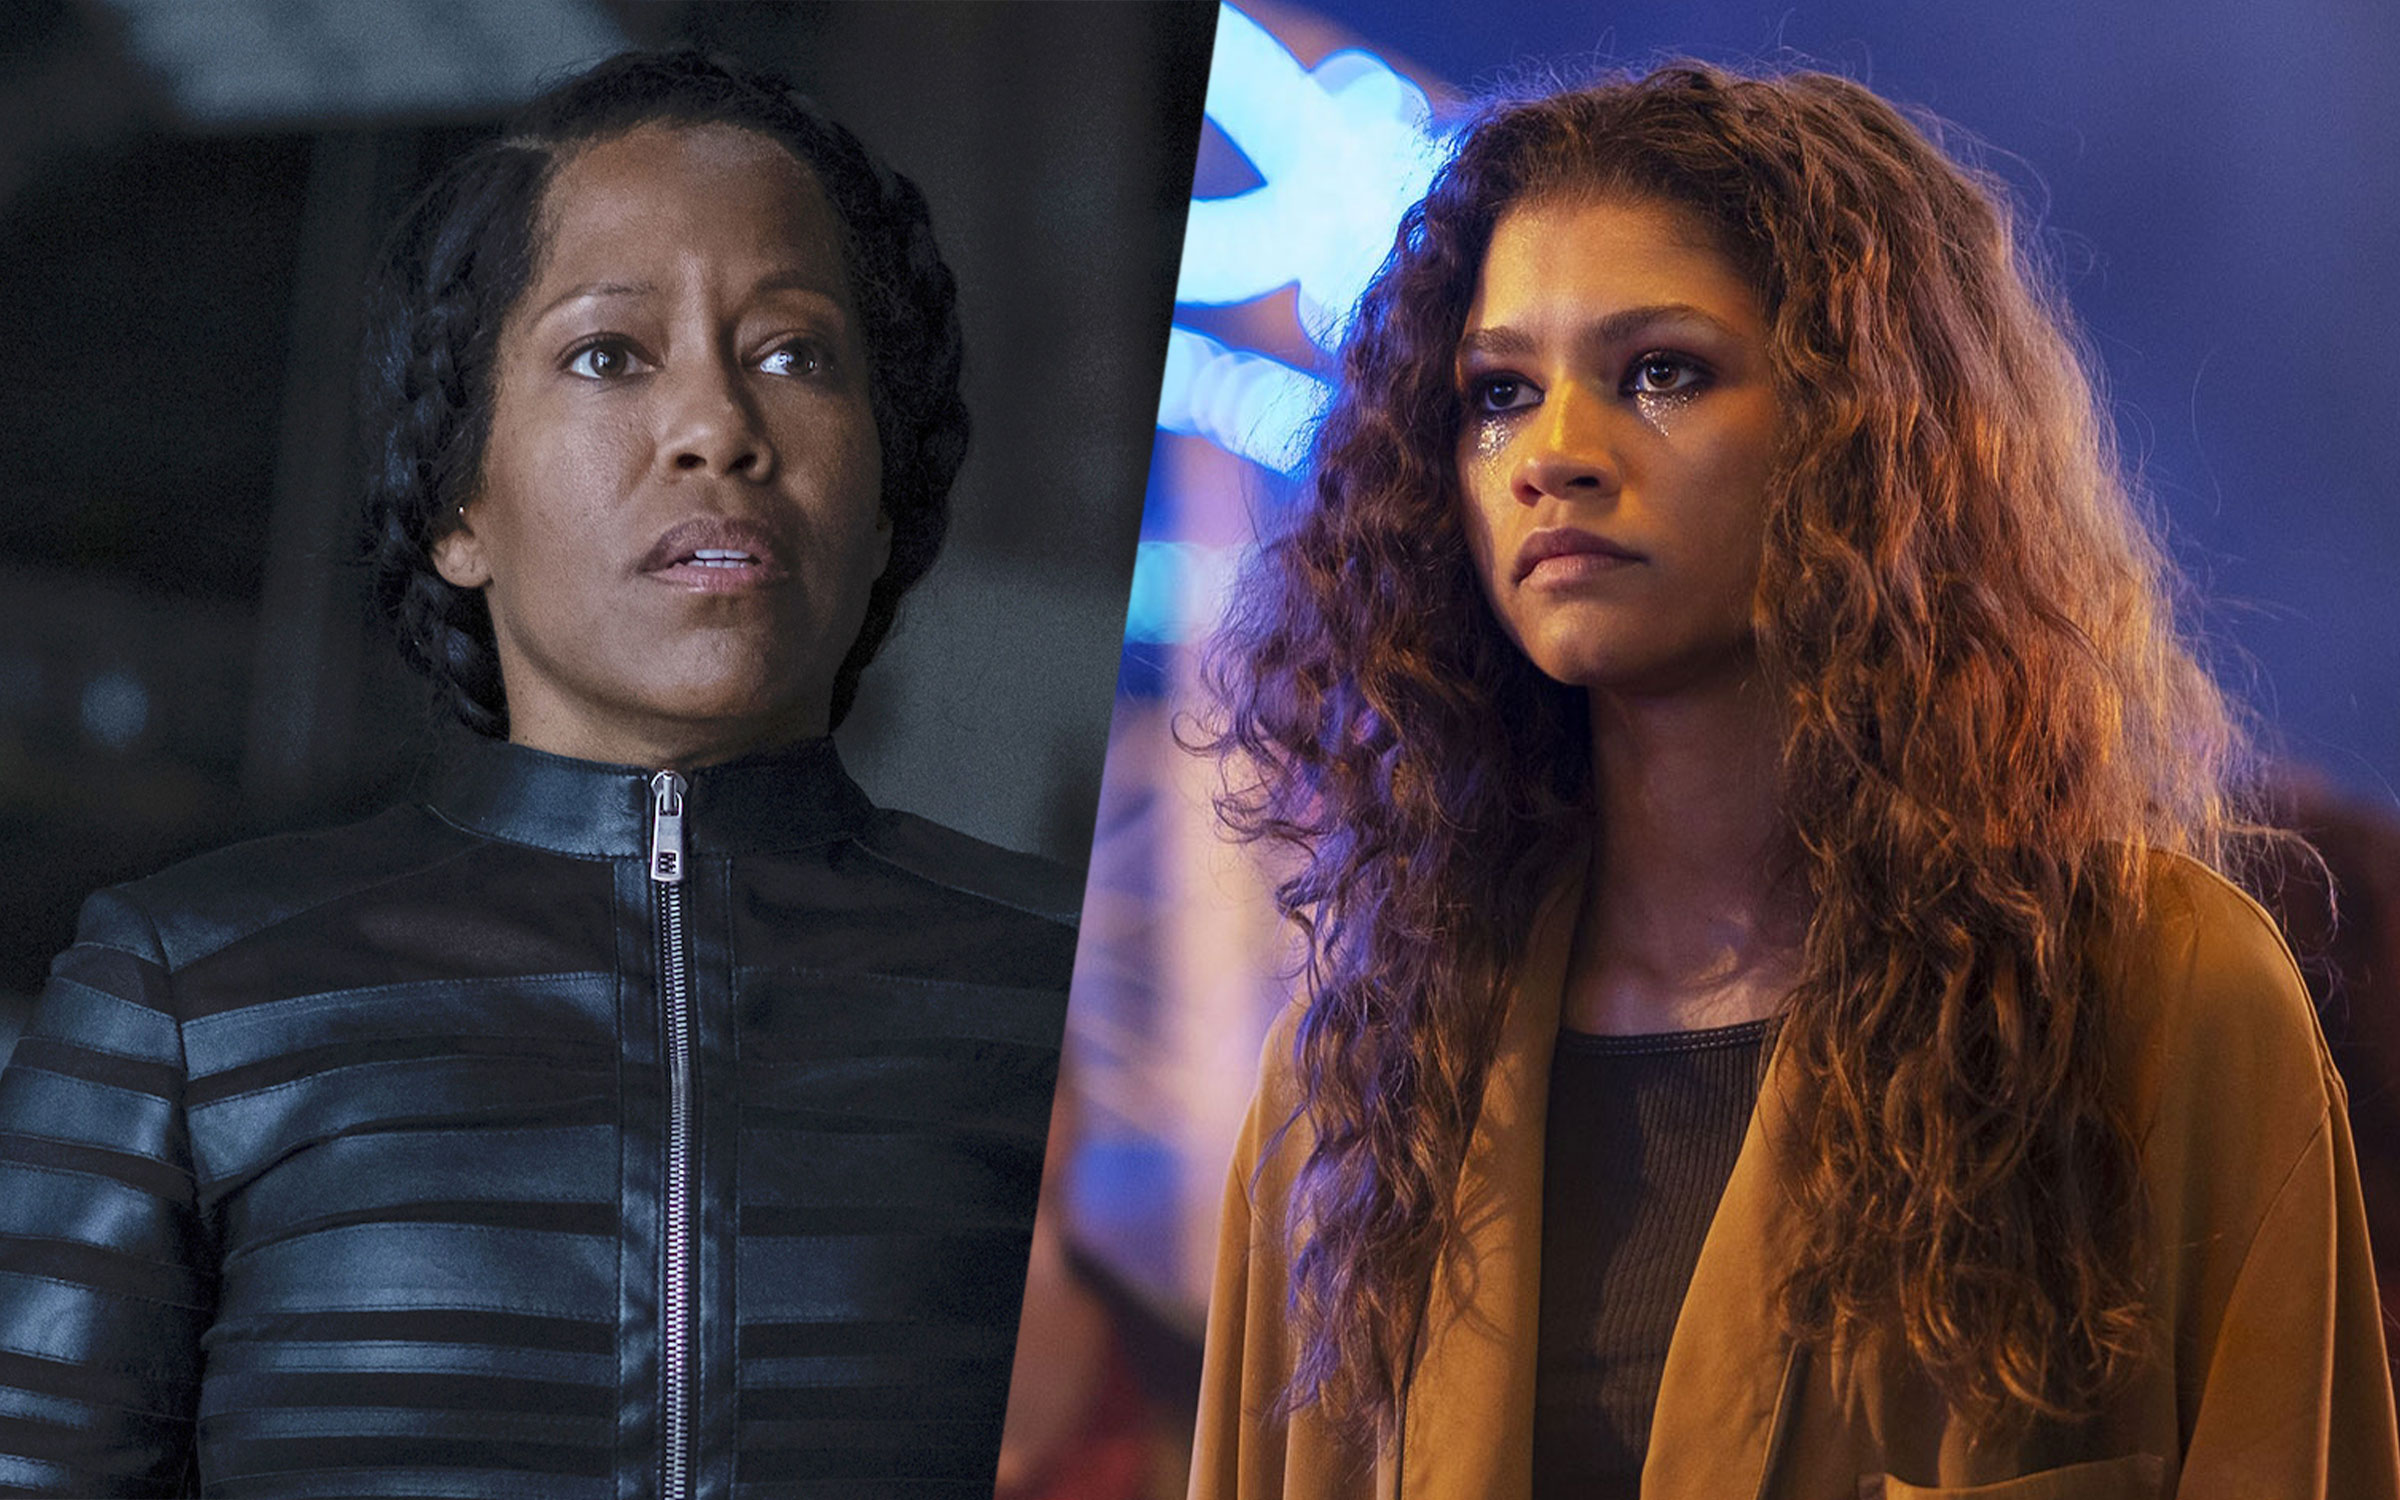 Regina King, a Black woman, wears all black and looks concerned; Zendaya, a young woman with loose curly hair, has glitter on her face and looks serious.